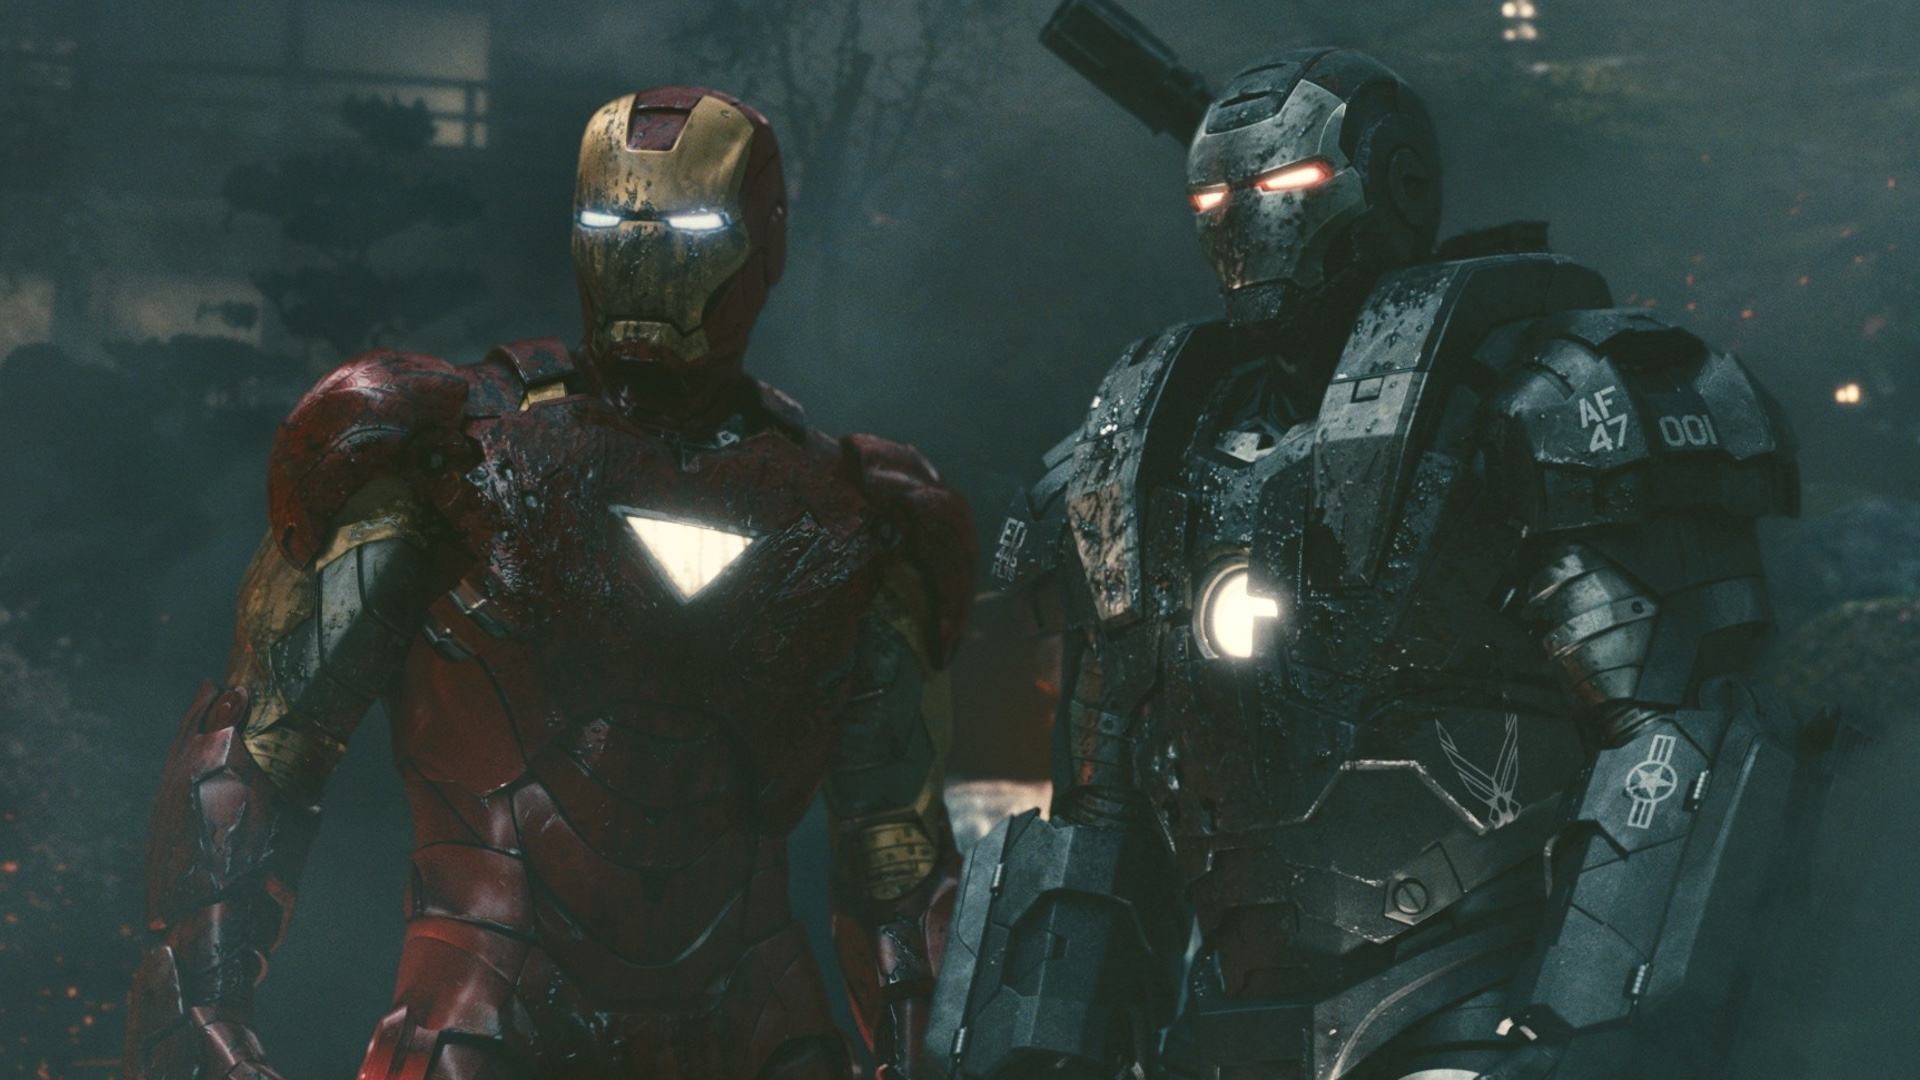 Spoiled Rotten 155: Revisiting Iron Man 2